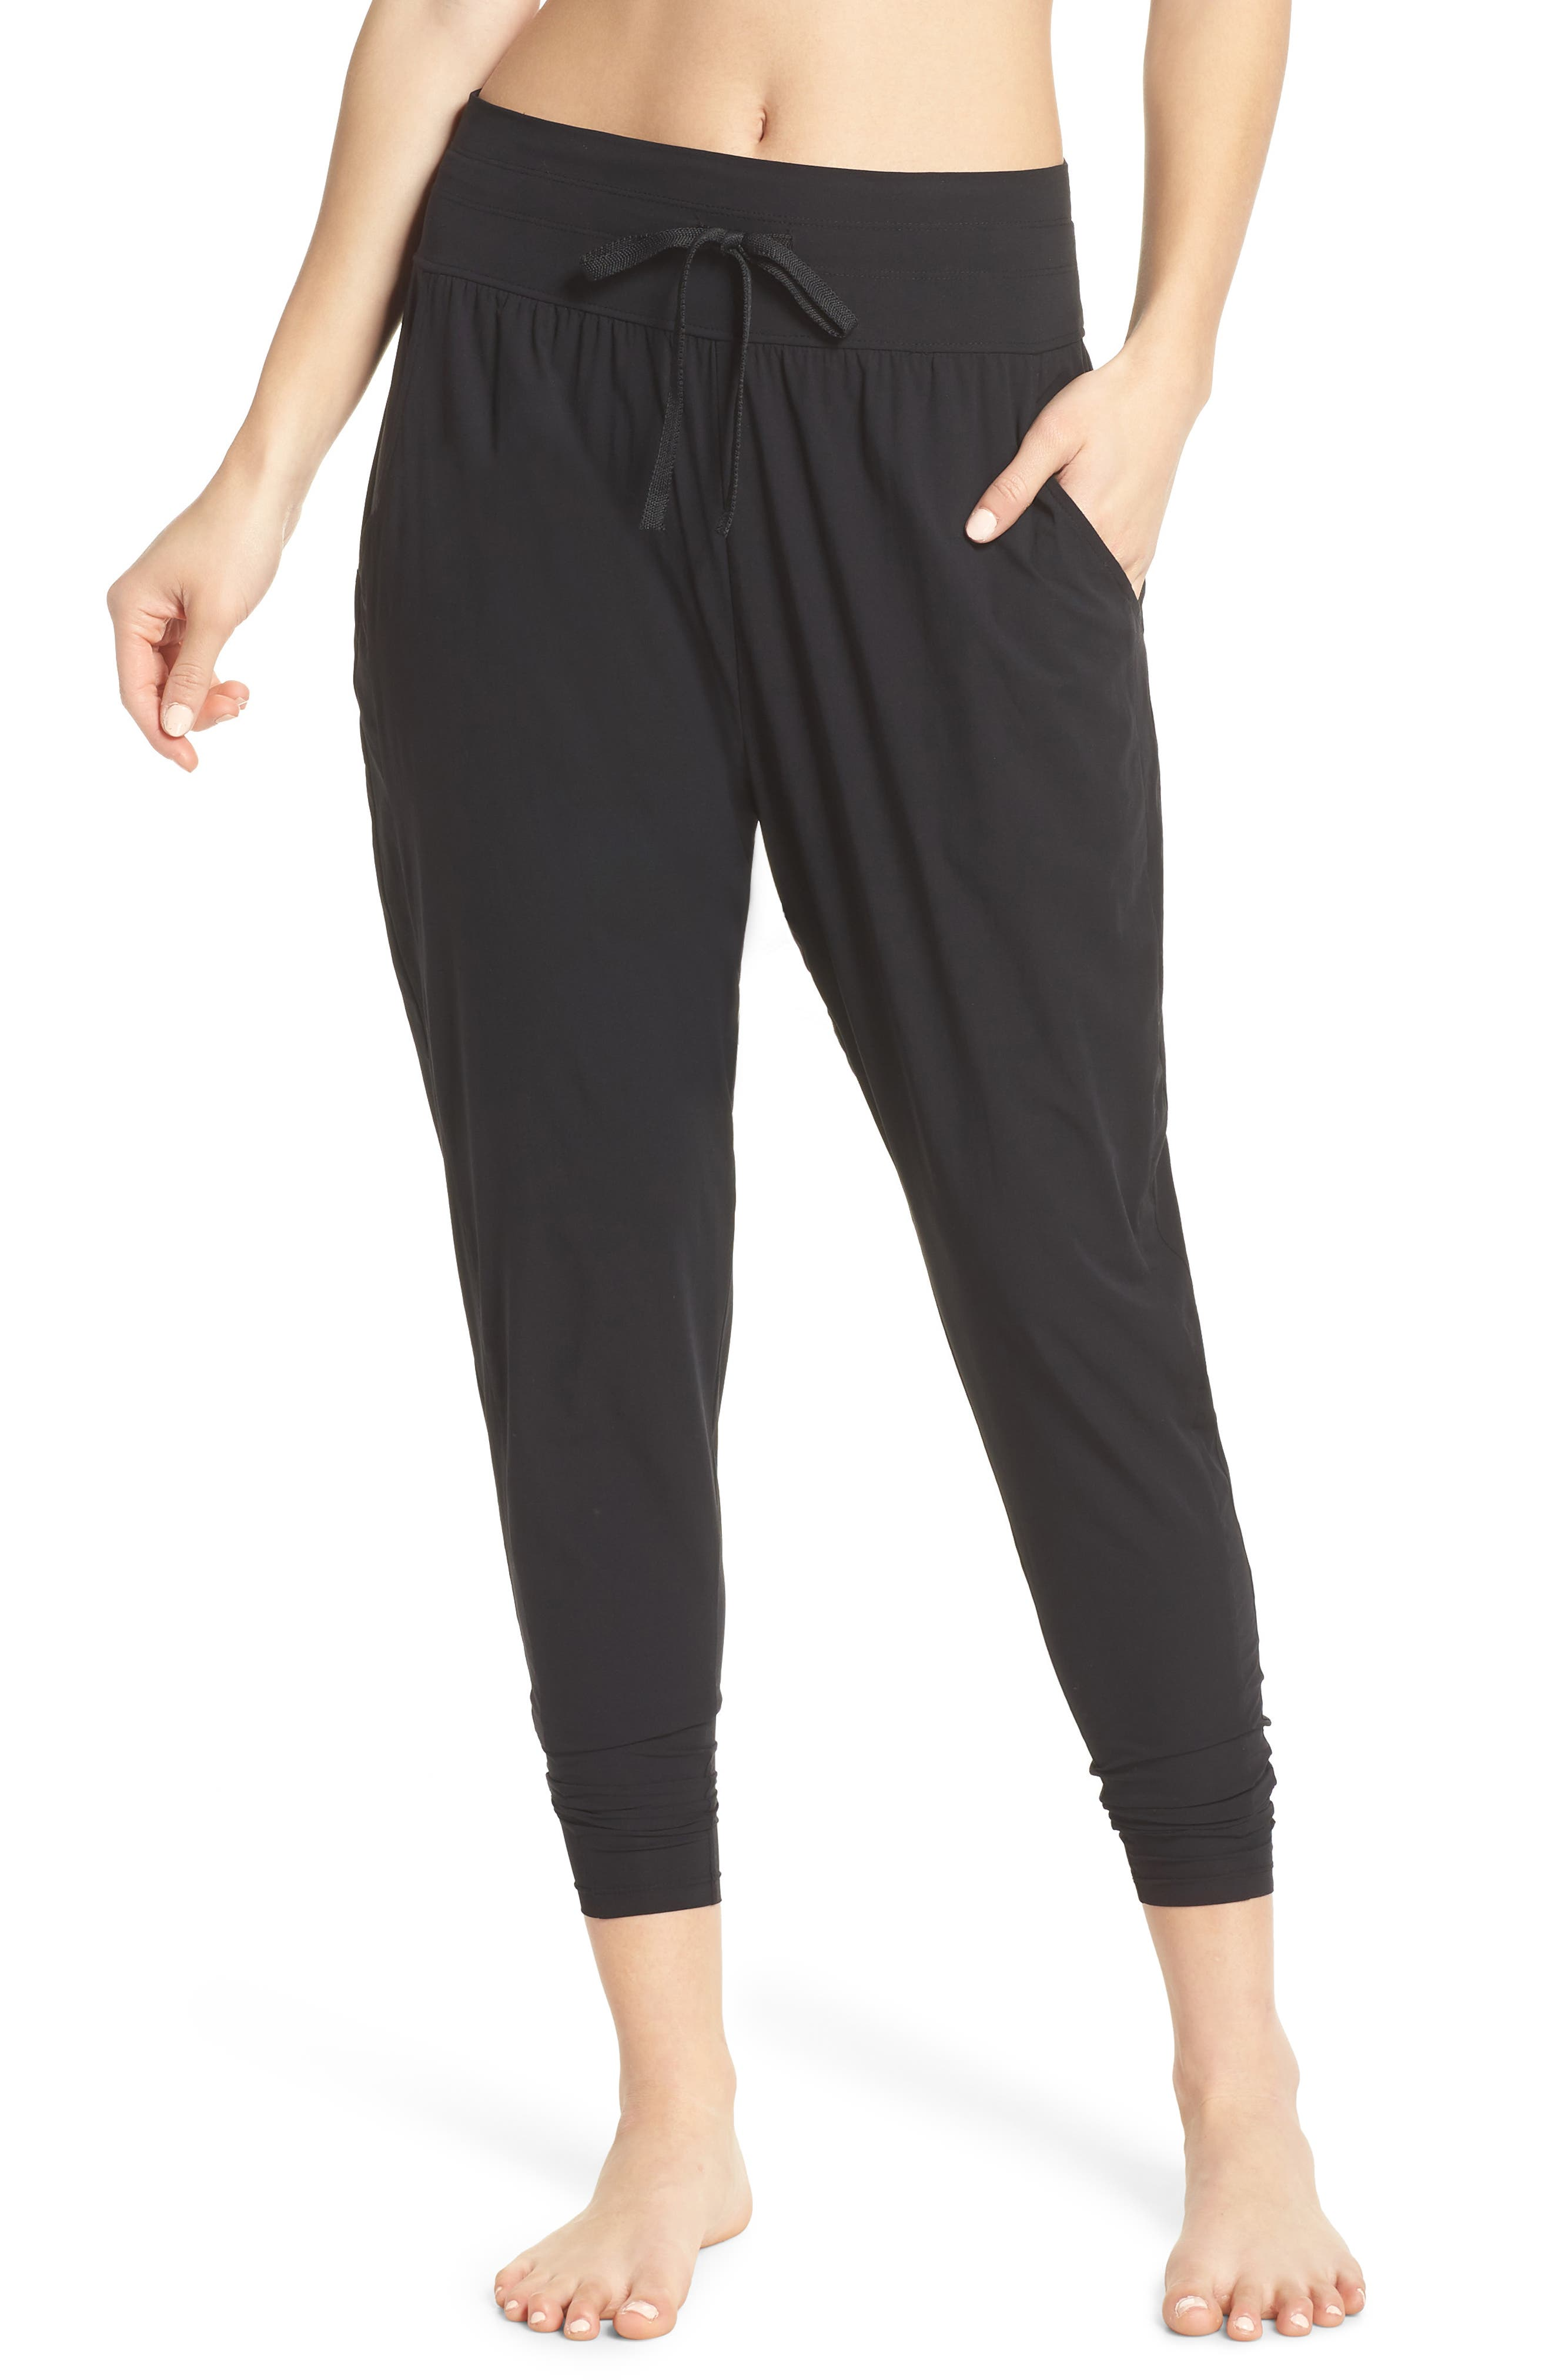 FREE PEOPLE MOVEMENT,                             Cardio Harem Pants,                             Main thumbnail 1, color,                             001